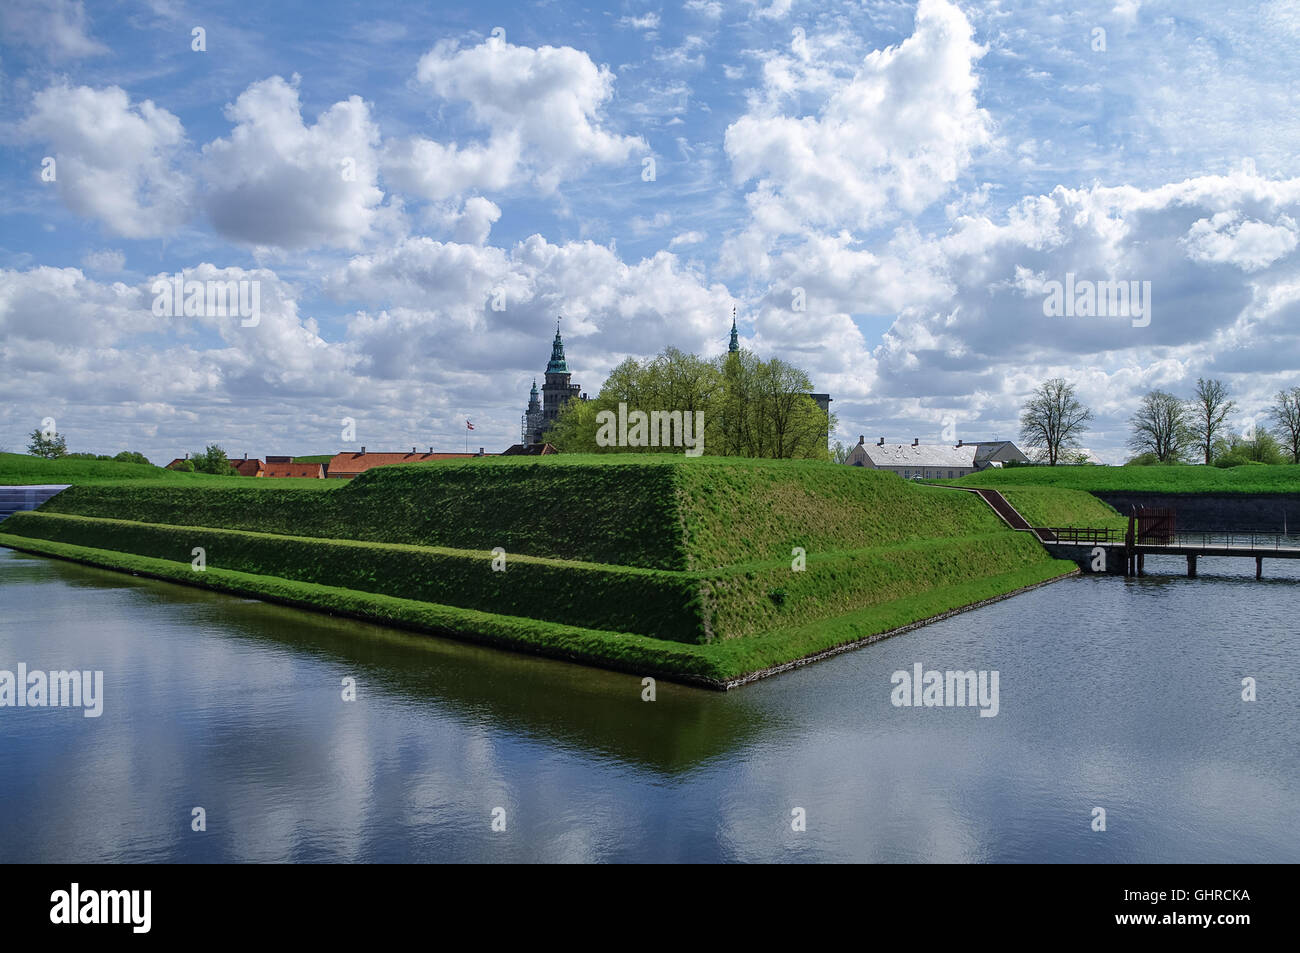 Renaissance castle and fortress of Kronborg, home of Shakespeare's Hamlet. View to moat and walls of the fortress, - Stock Image